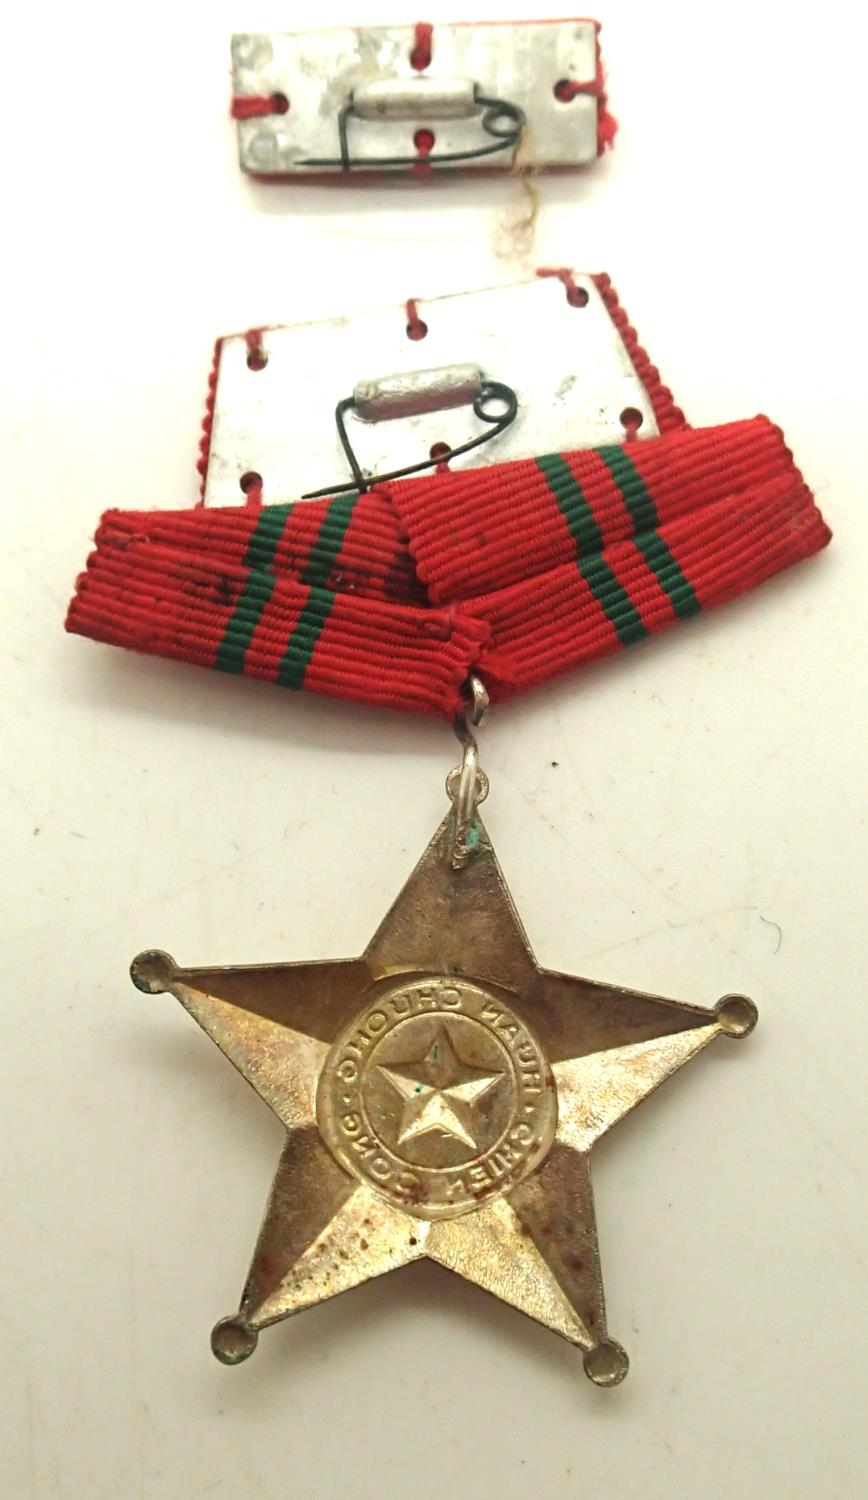 Vietnam War NVA medal, 2nd class. P&P Group 1 (£14+VAT for the first lot and £1+VAT for subsequent - Image 2 of 2